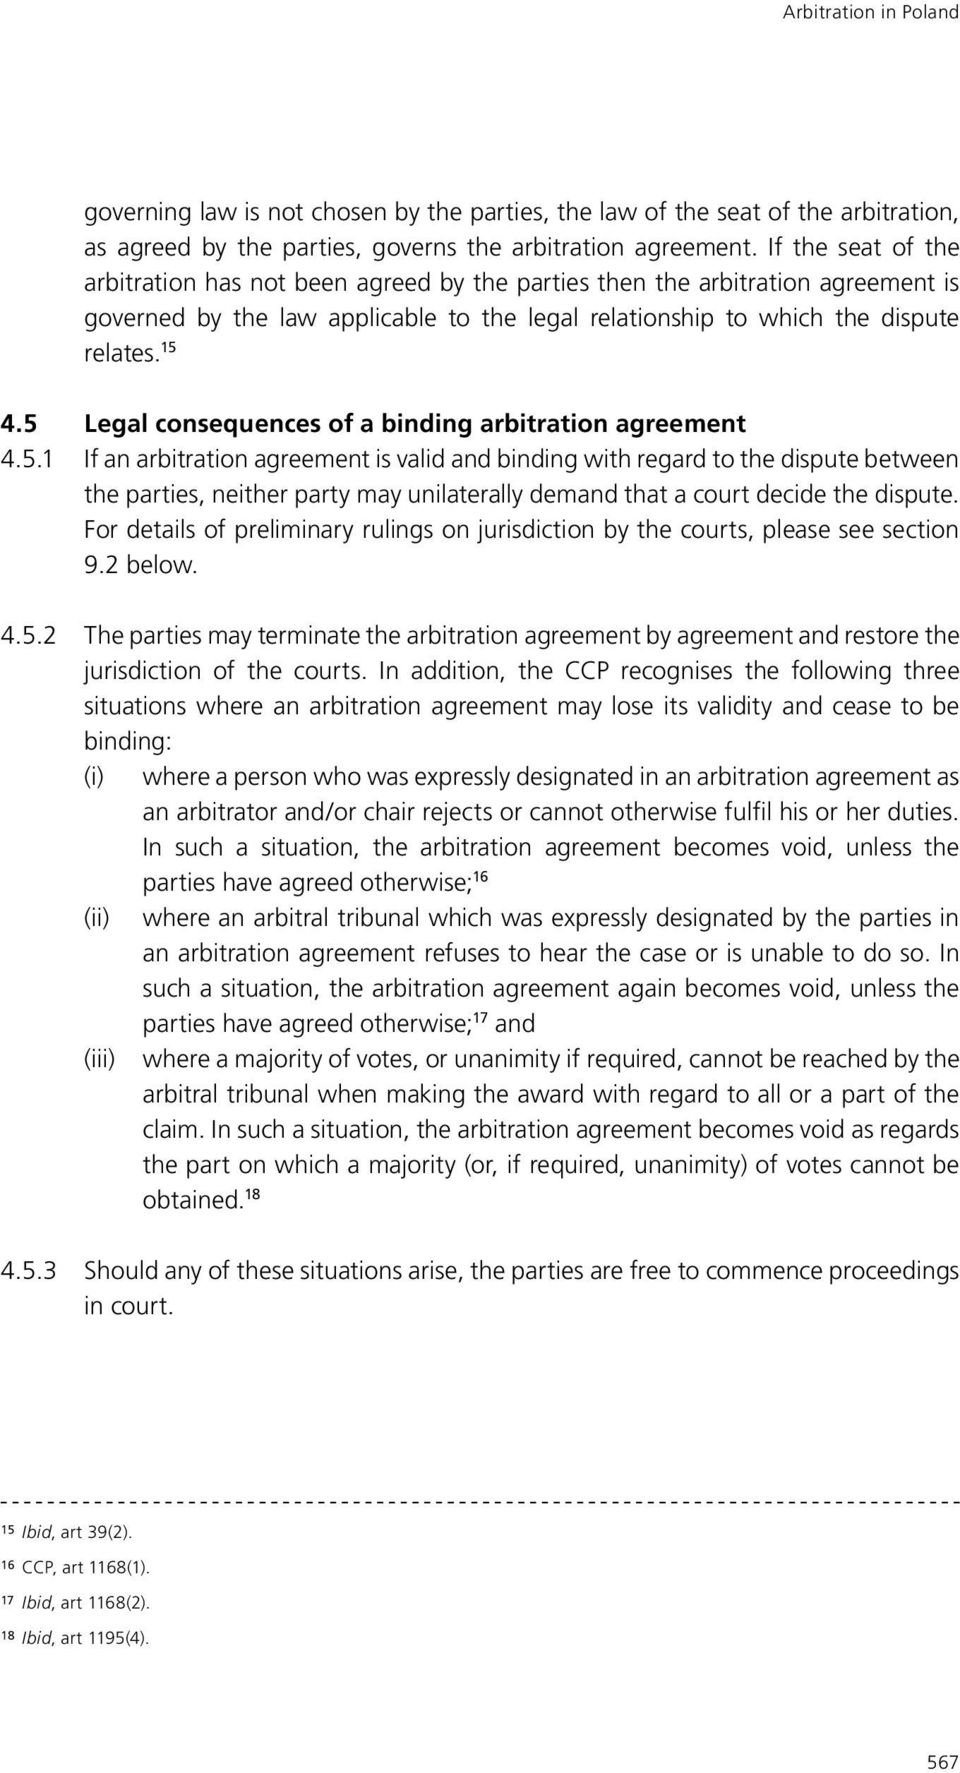 5 Legal consequences of a binding arbitration agreement 4.5.1 If an arbitration agreement is valid and binding with regard to the dispute between the parties, neither party may unilaterally demand that a court decide the dispute.